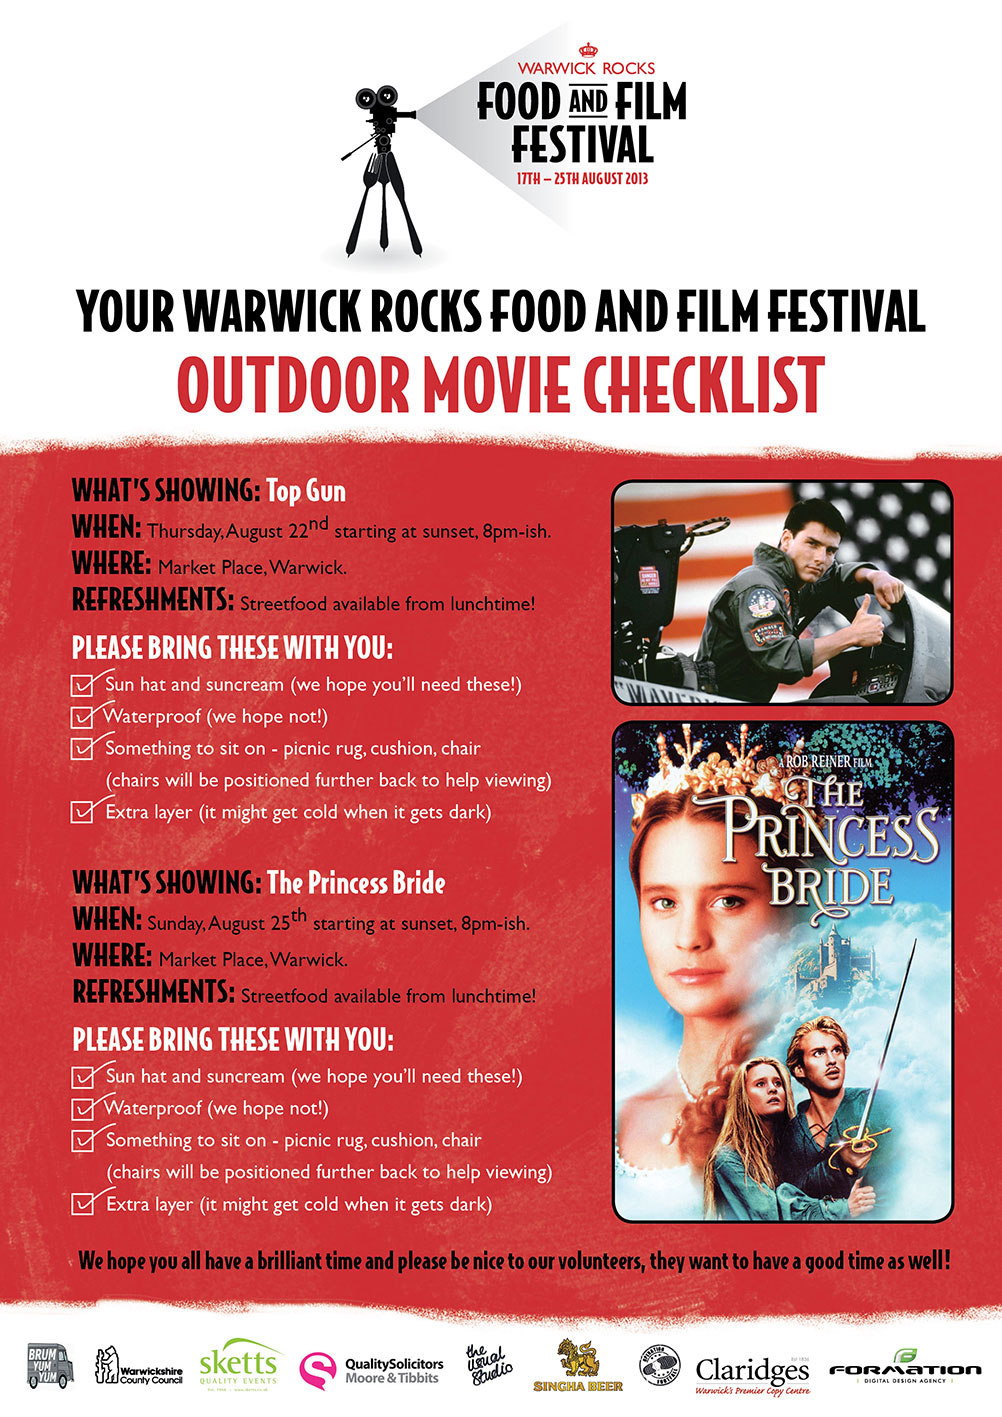 FoodFilmFestival_viewing_guide.jpg